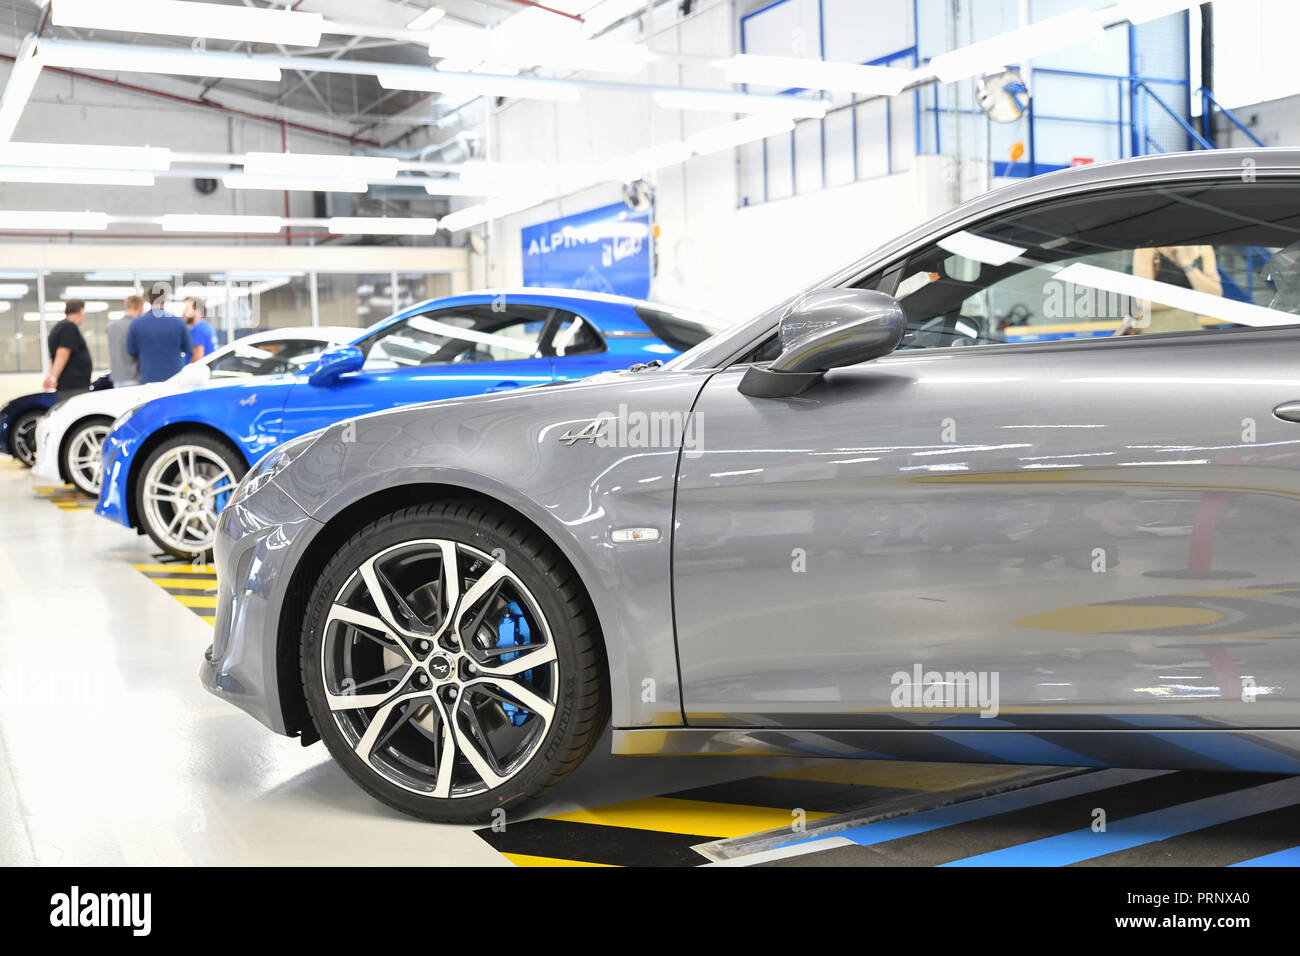 DIEPPE, FRANCE - JUNE 30, 2018: The new model of the sports car Alpine A110 is exhibited at the factory. Renault Alpine car - Stock Image